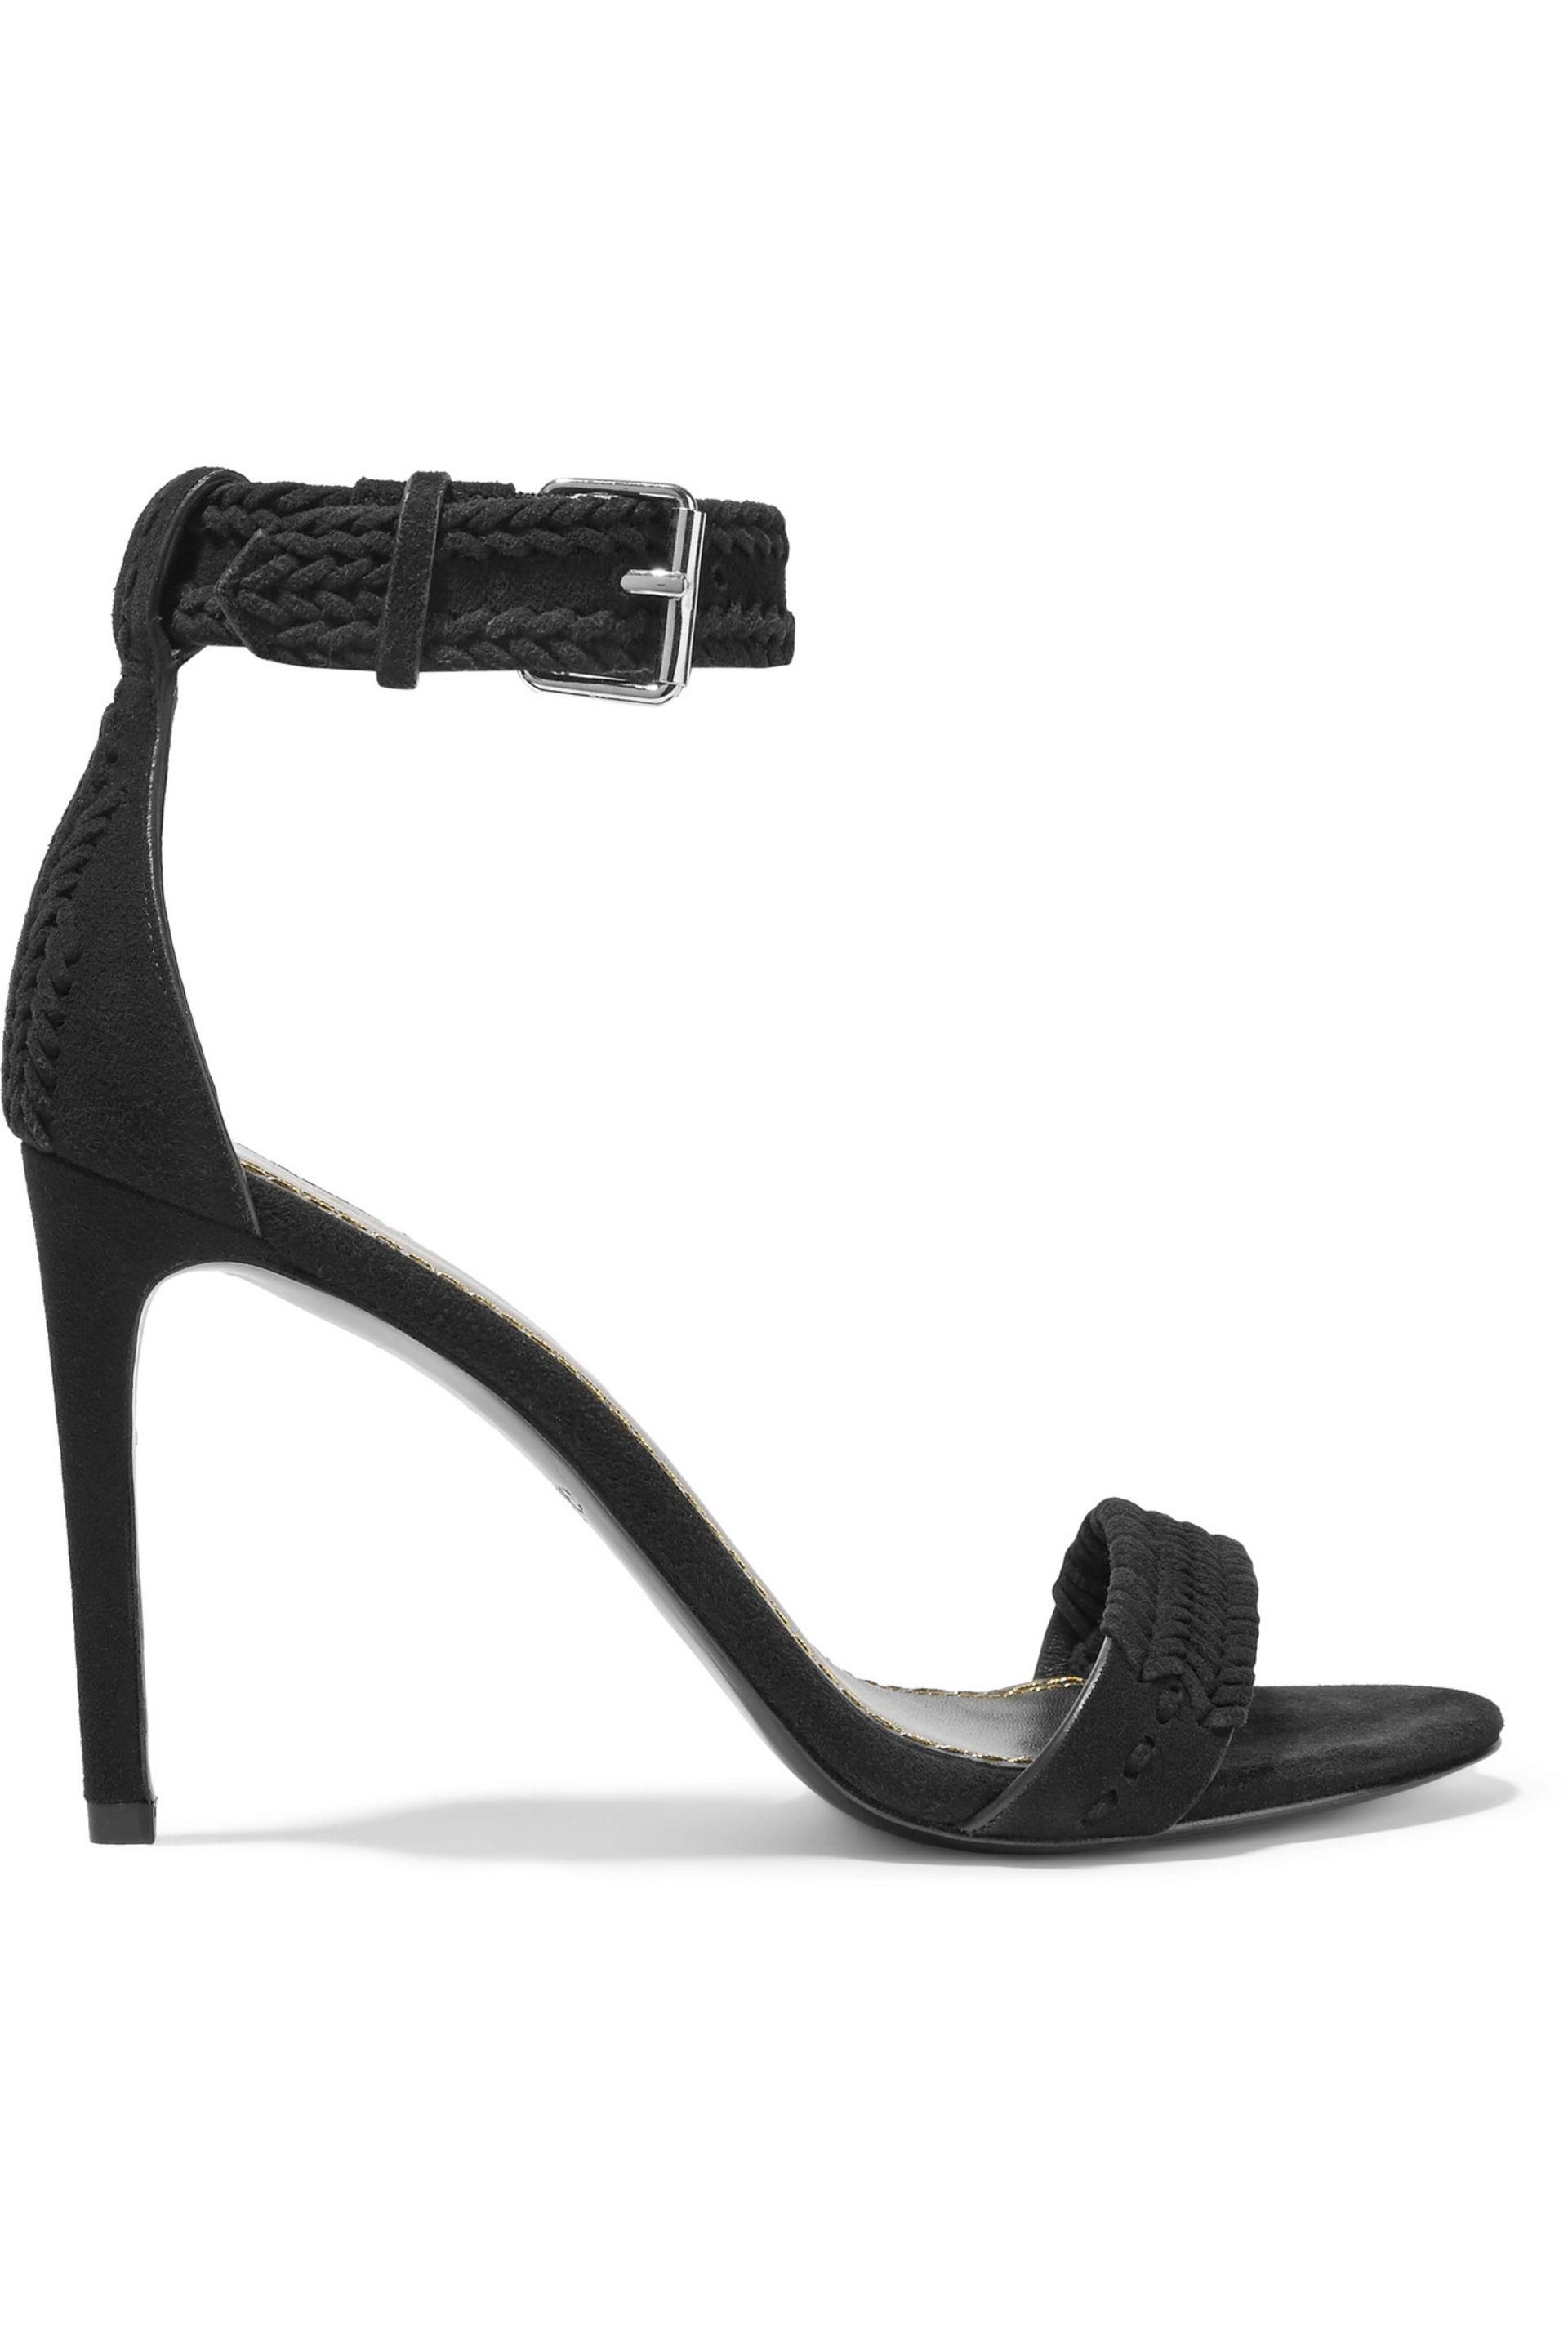 cheap newest clearance outlet locations Maje Suede Embellished Sandals uKgiMQpOk